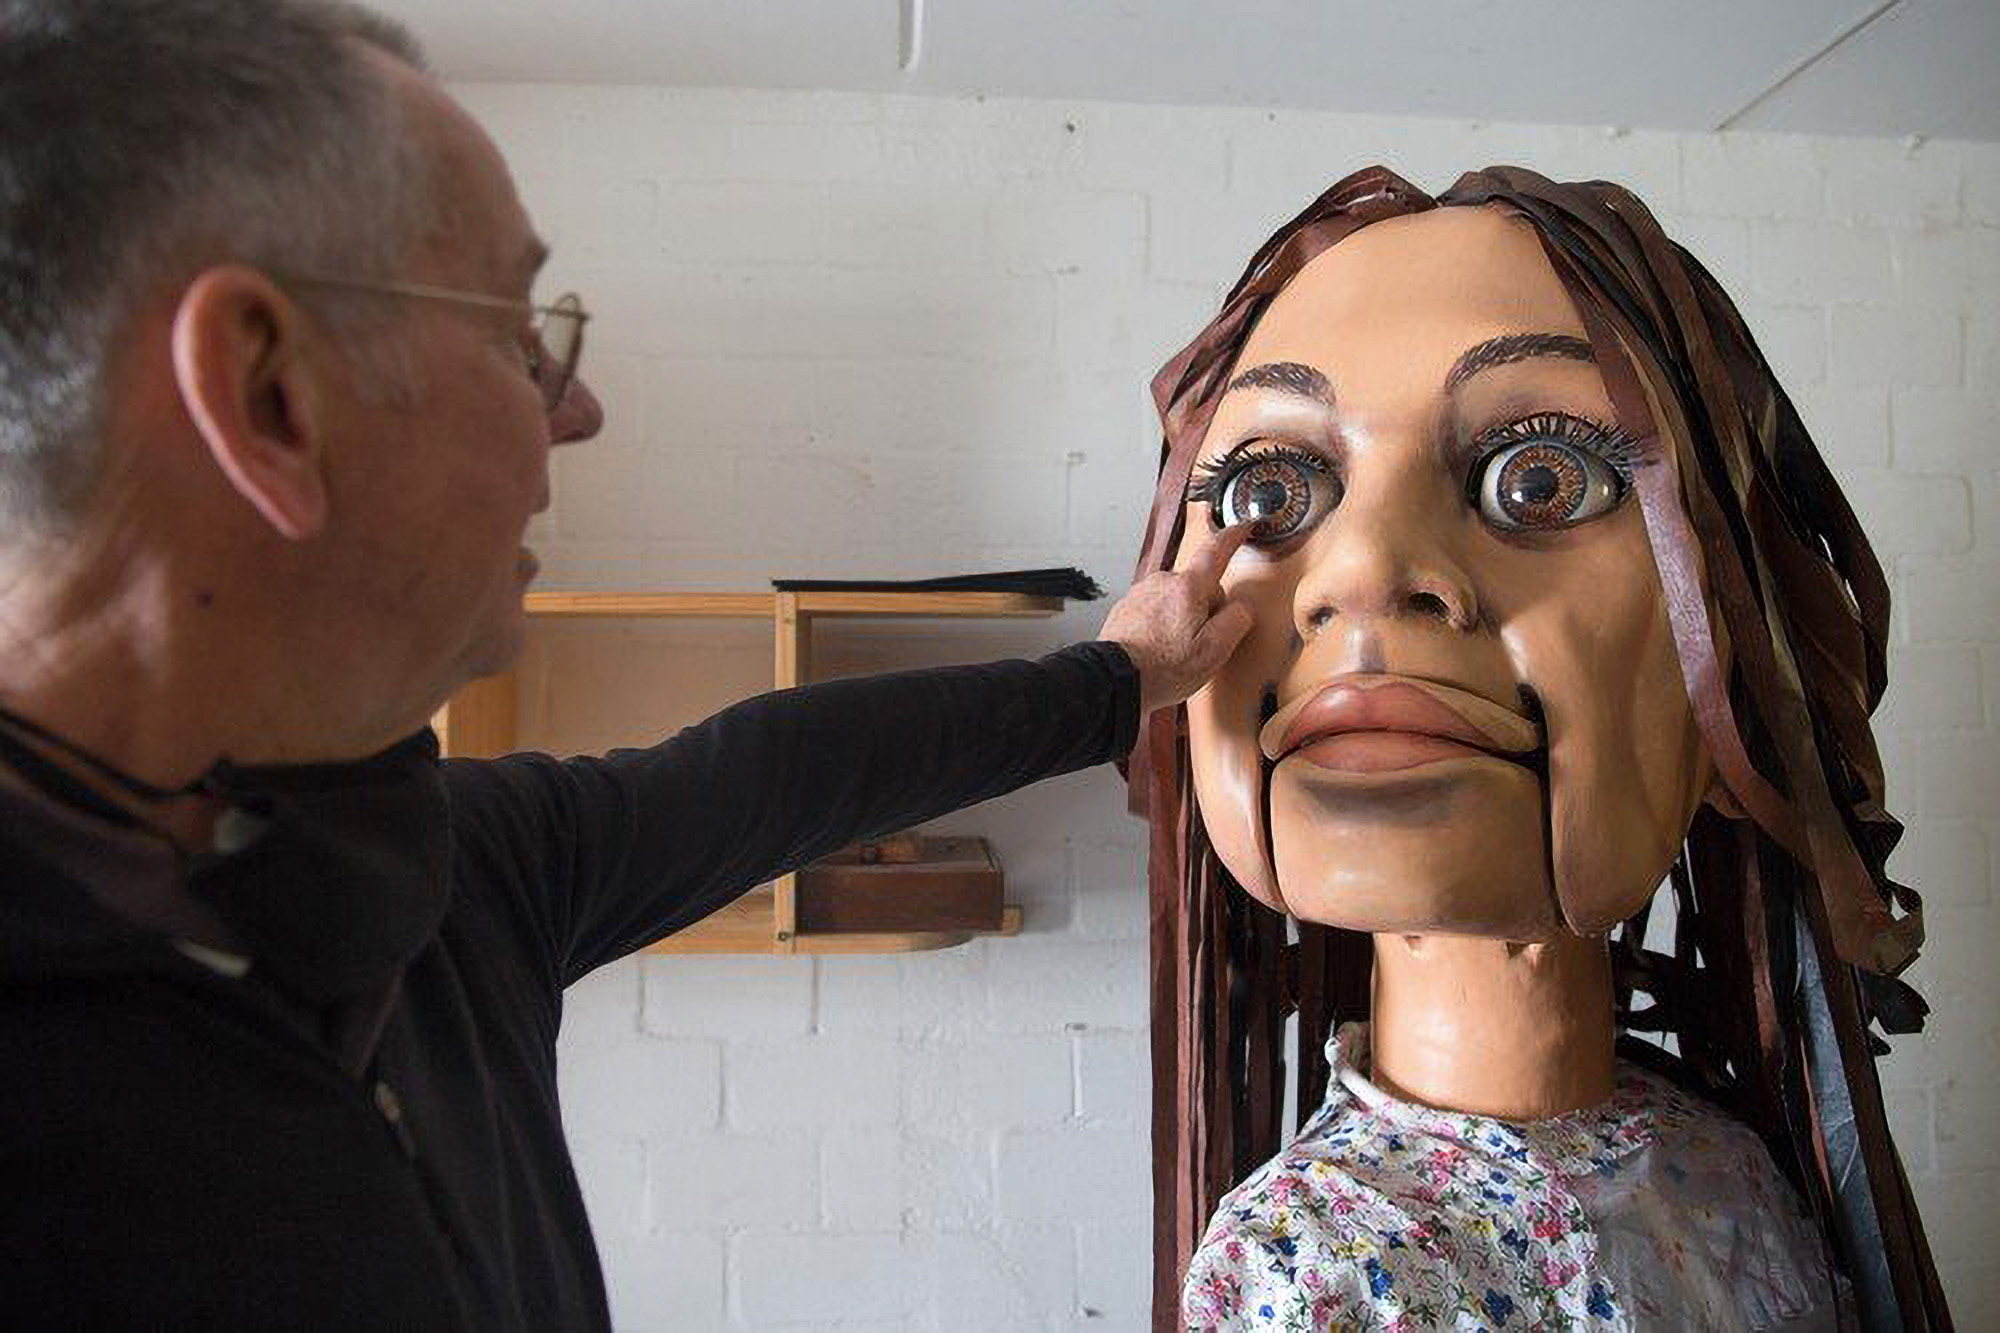 Giant 'Amal' Puppet Highlights Child Refugee Crisis